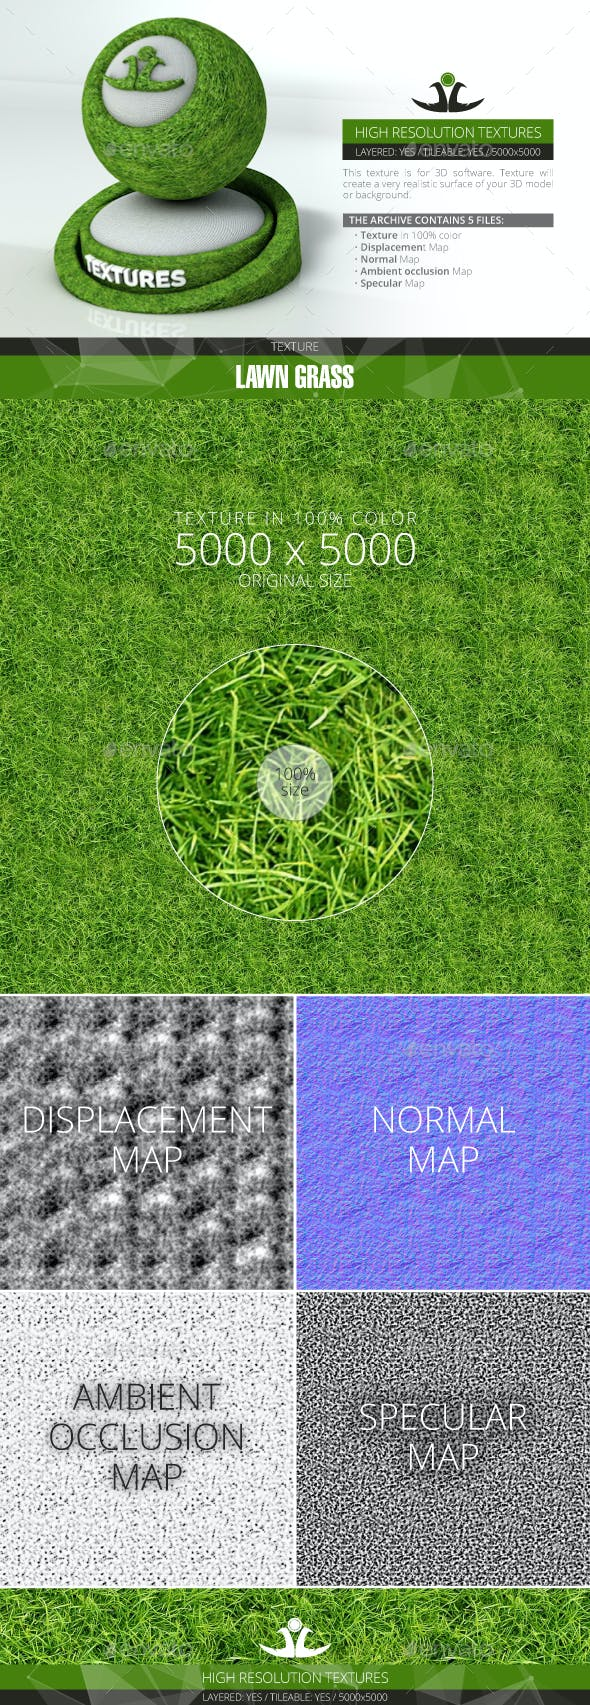 Lawn Grass 8 - 3DOcean Item for Sale